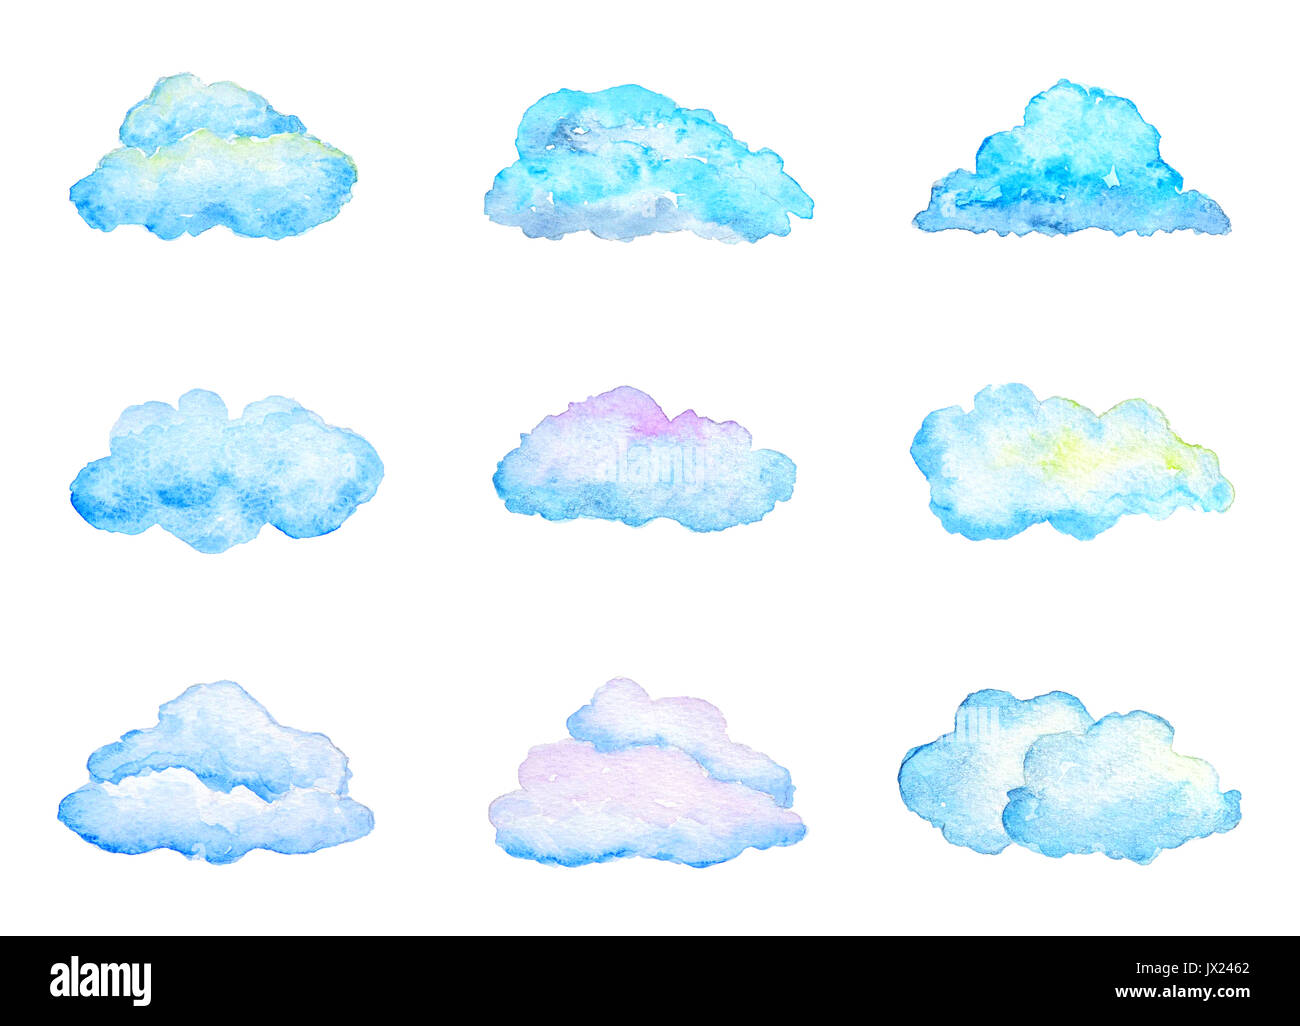 Set of Bright Blue Watercolor Clouds, Isolated on White, Hand Drawn and Painted - Stock Image